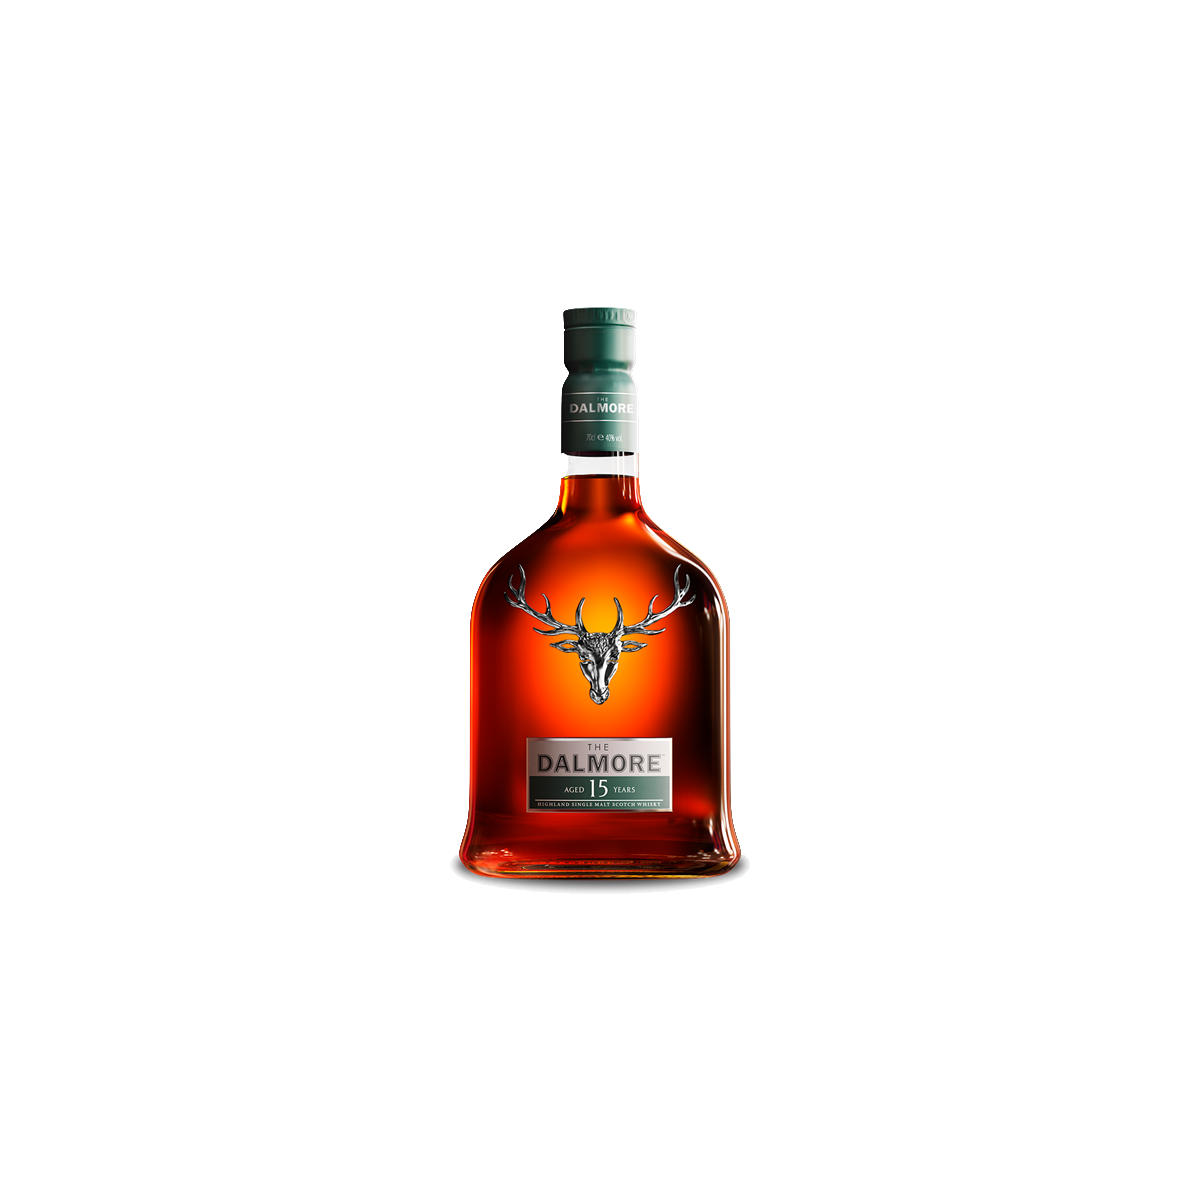 Dalmore 15 ans Whisky 40 %